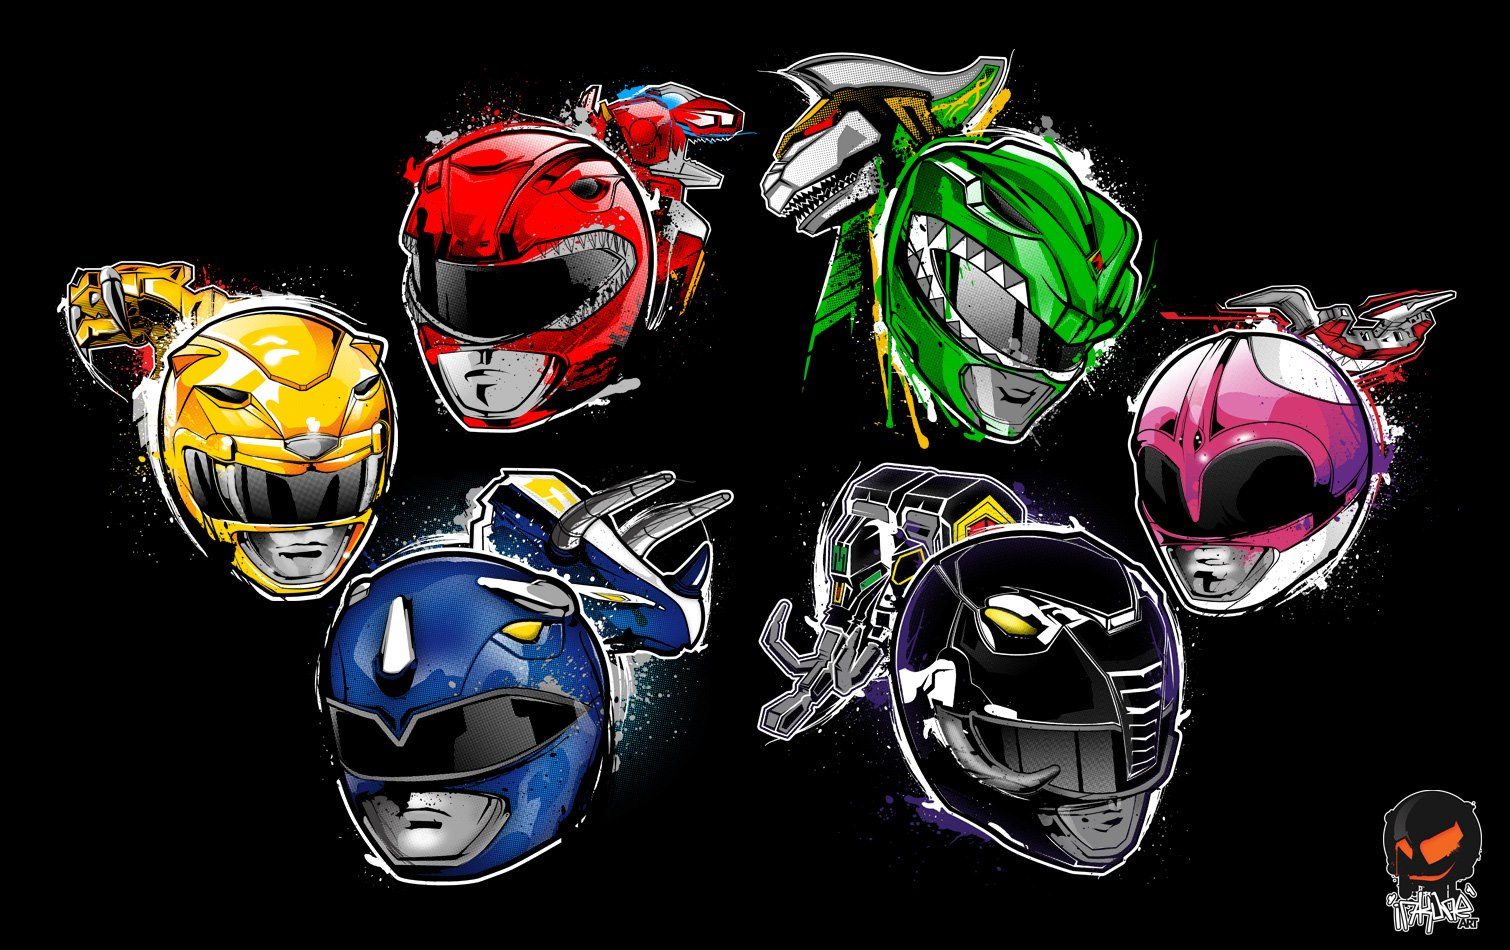 The Power Rangers Images MIghty Morphin HD Wallpaper And Background Photos 36641653